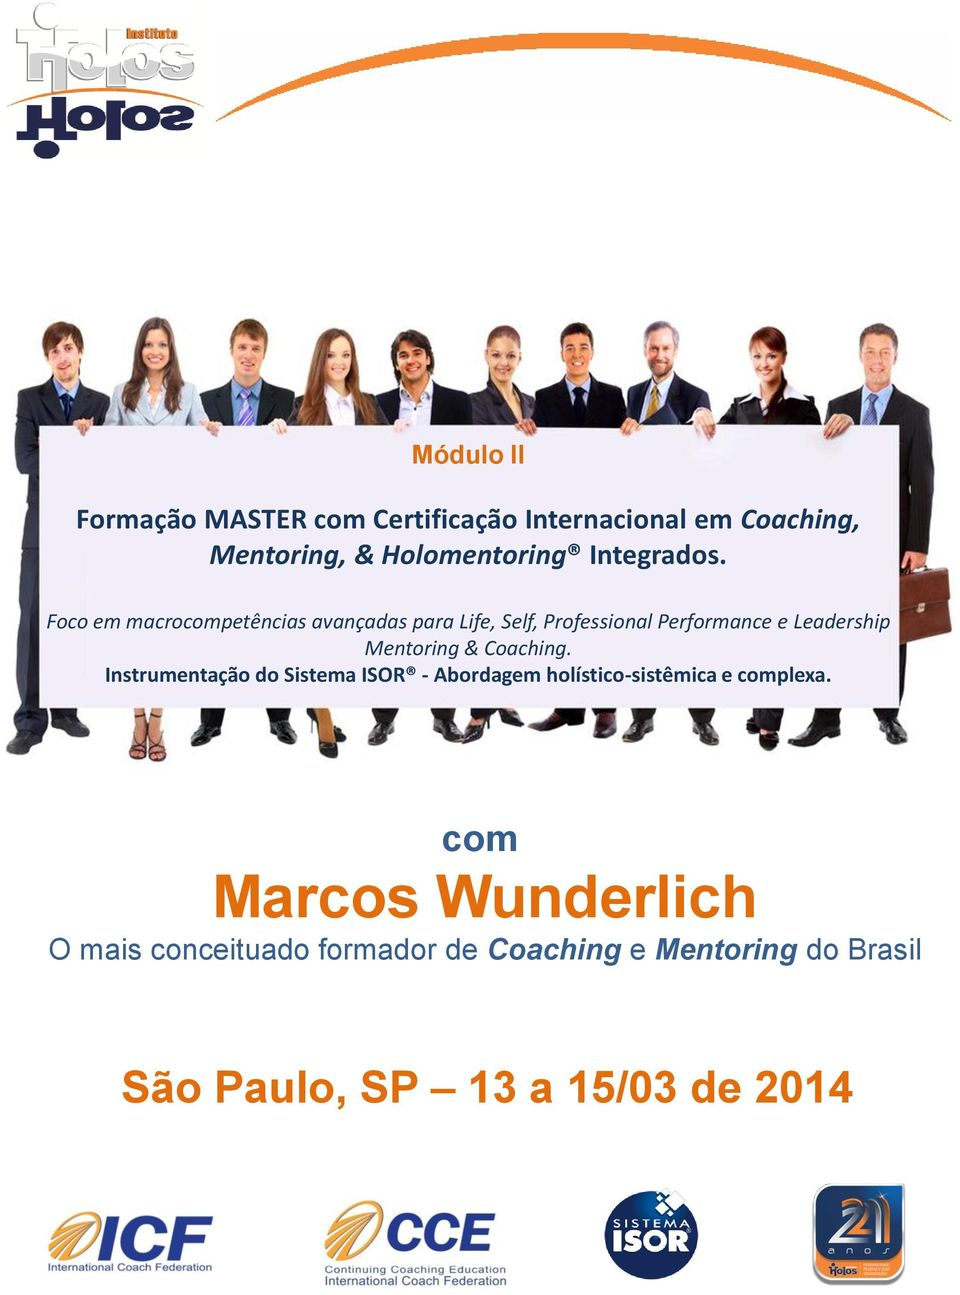 Foco em macrocompetências avançadas para Life, Self, Professional Performance e Leadership Mentoring &